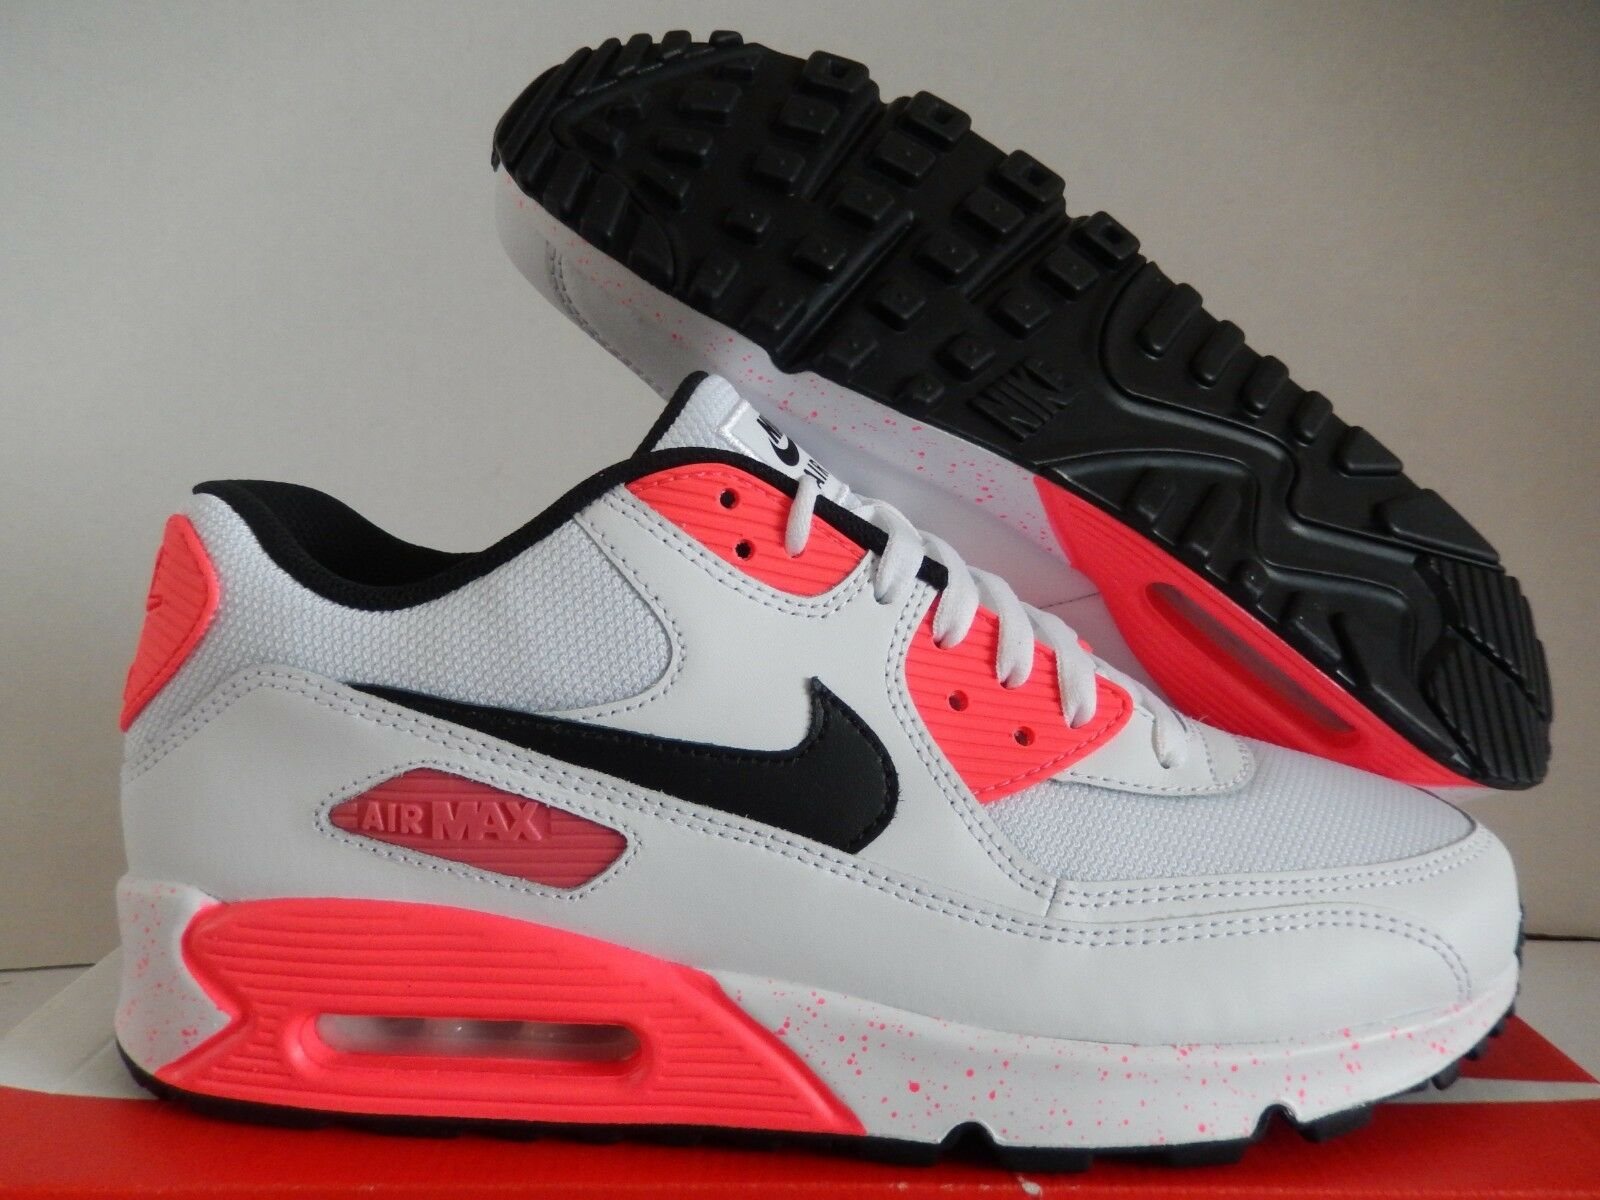 NIKE AIR MAX 90 ID WHITE-INFRARED-BLACK SZ 11 MESH TOE   [931902-994]